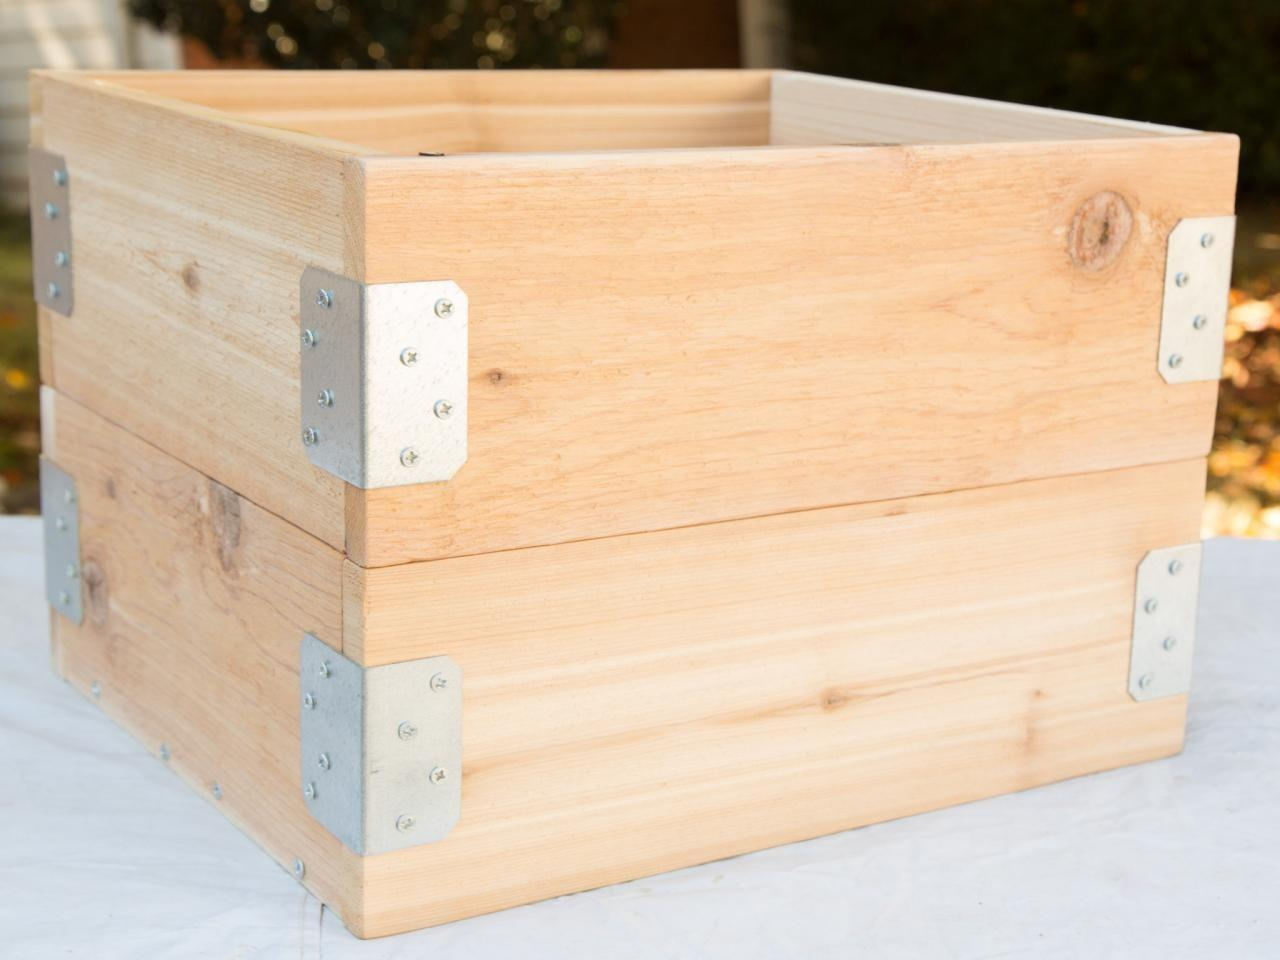 Mobile Wooden Crate Toy Storage